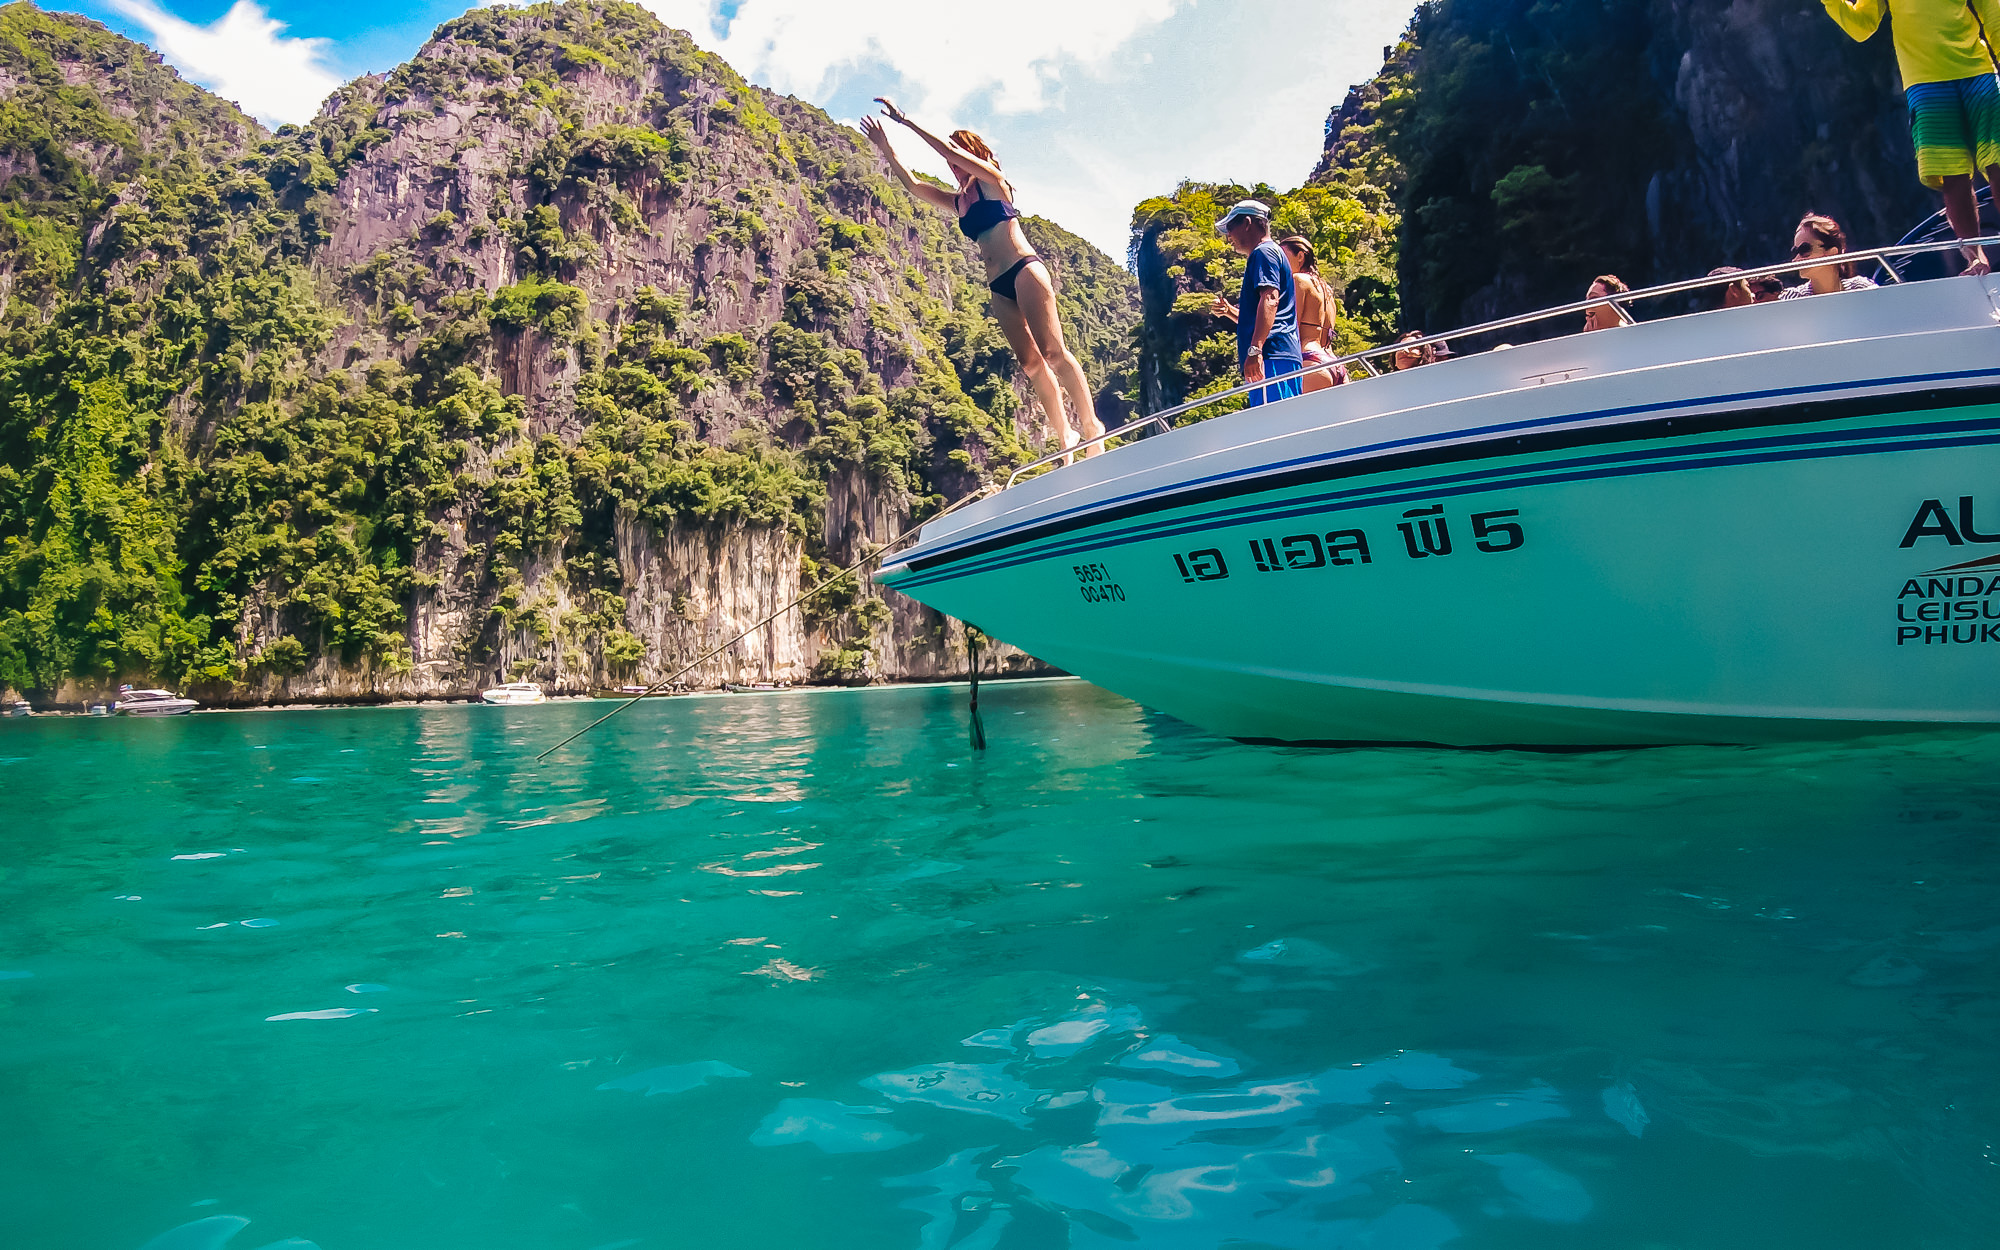 It was incredibly exhilarating to jump off that boat into the clear waters of Phi Phi Islands